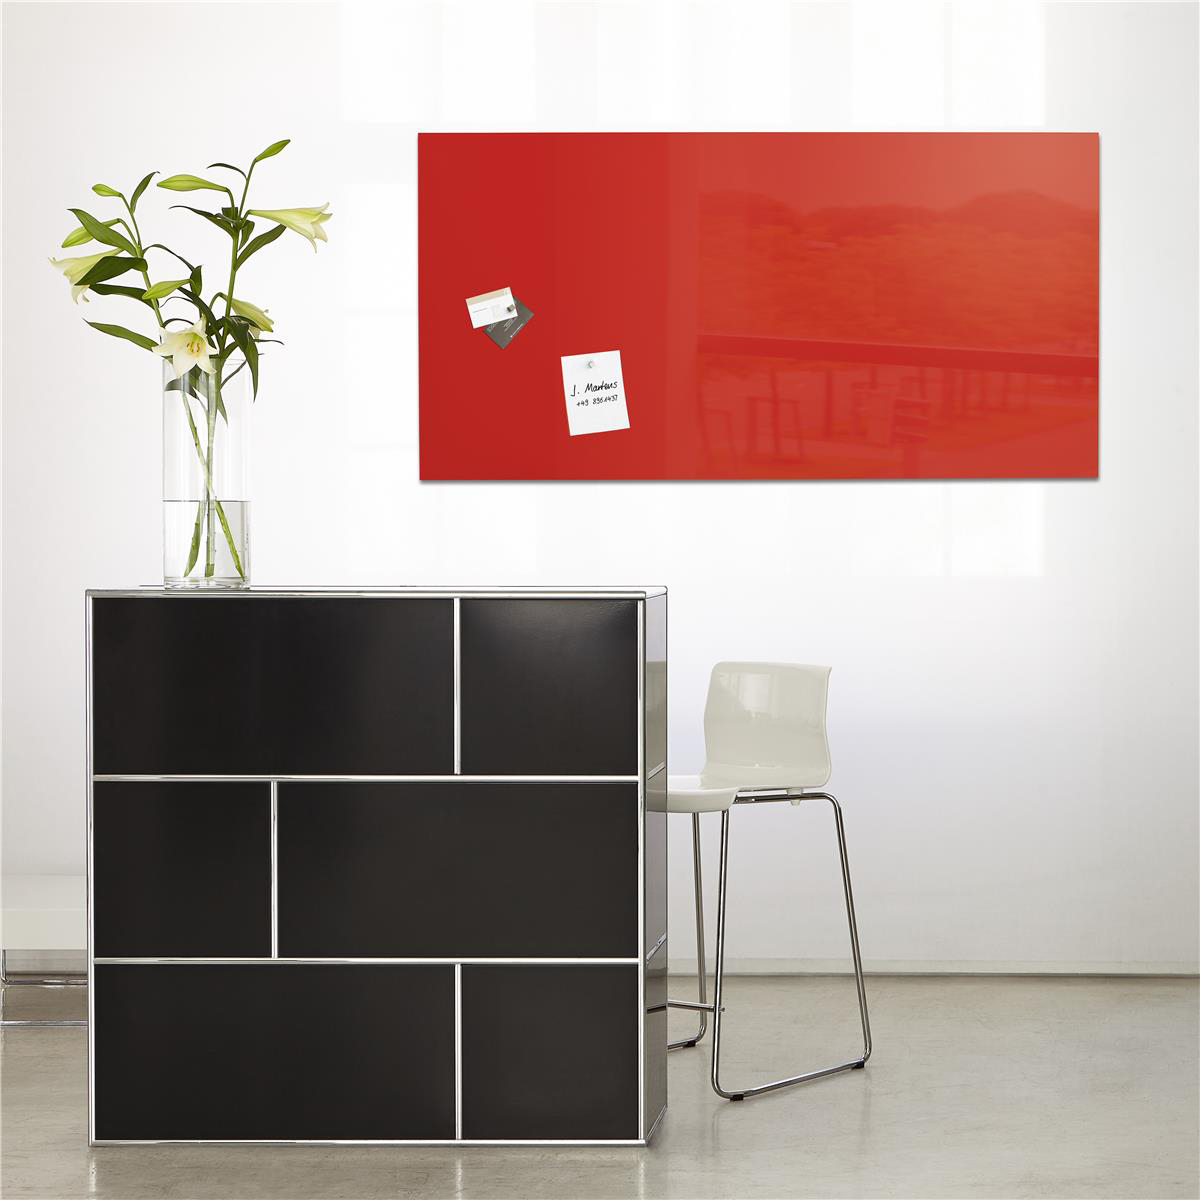 Sigel Artverum High Quality Tempered Glass Magnetic Board With Fixings 910x460mm Red GL147